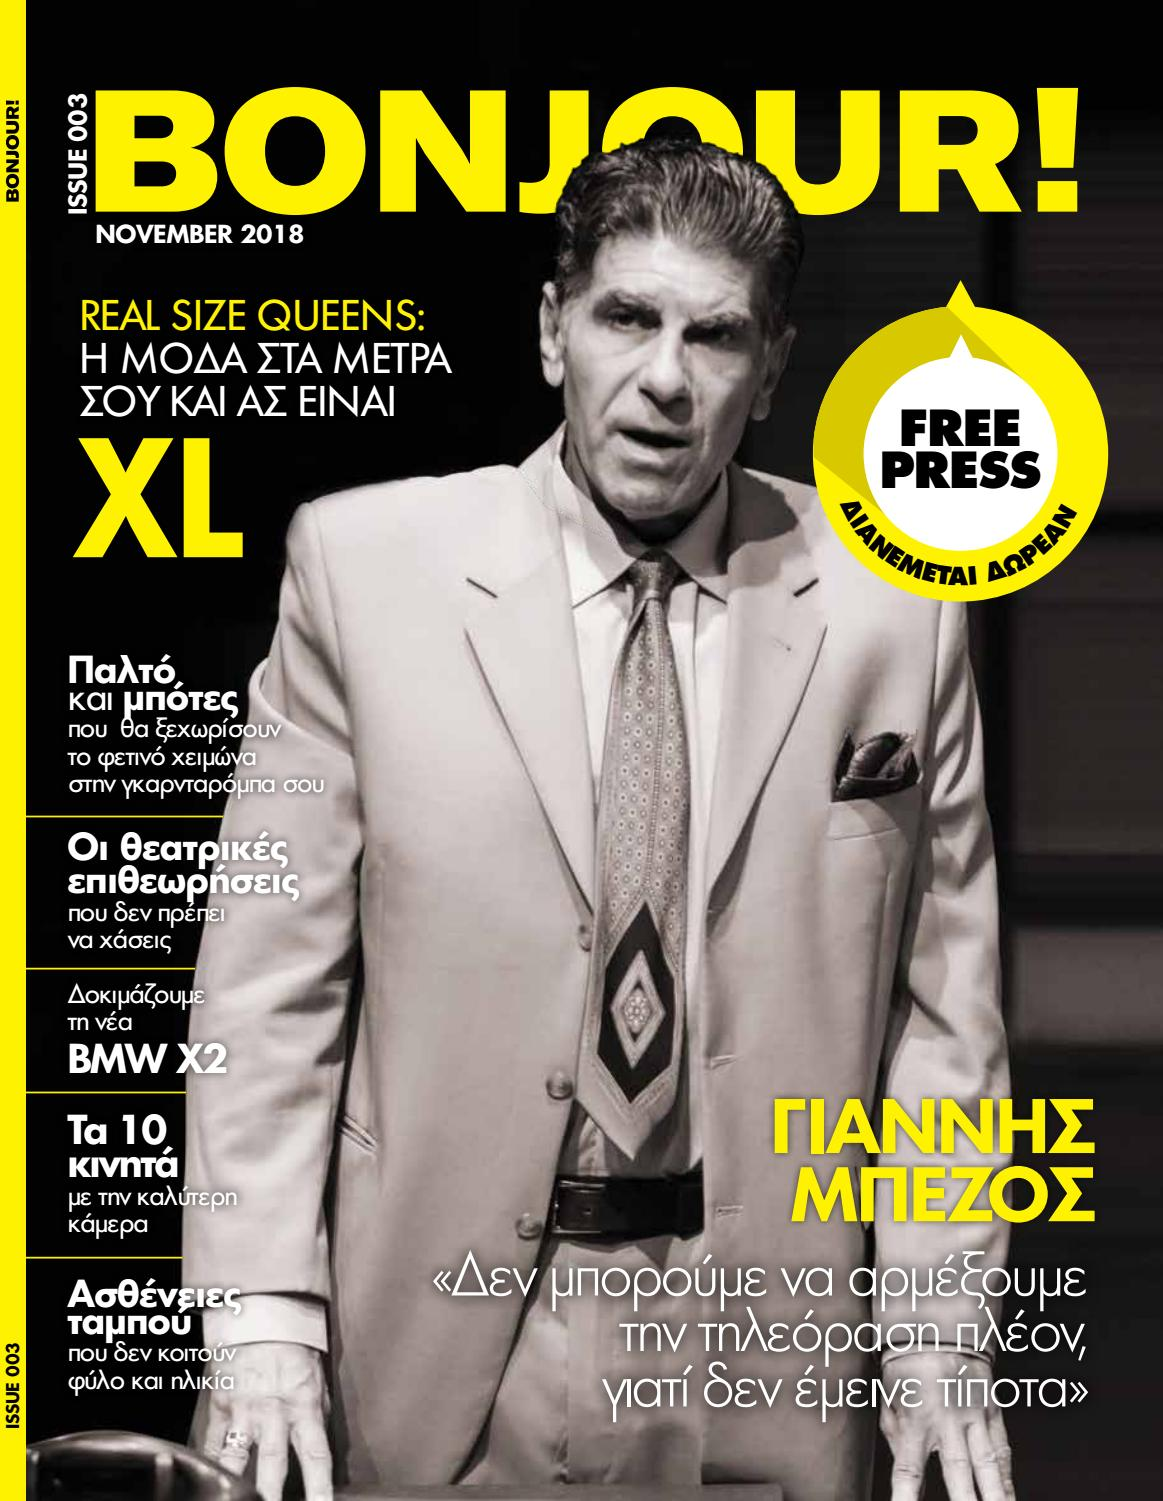 a10f521835a8 BONJOUR MAGAZINE ISSUE 003 ΝΟΕΜΒΡΙΟΣ 2018 by BONJOUR MAGAZINE - issuu